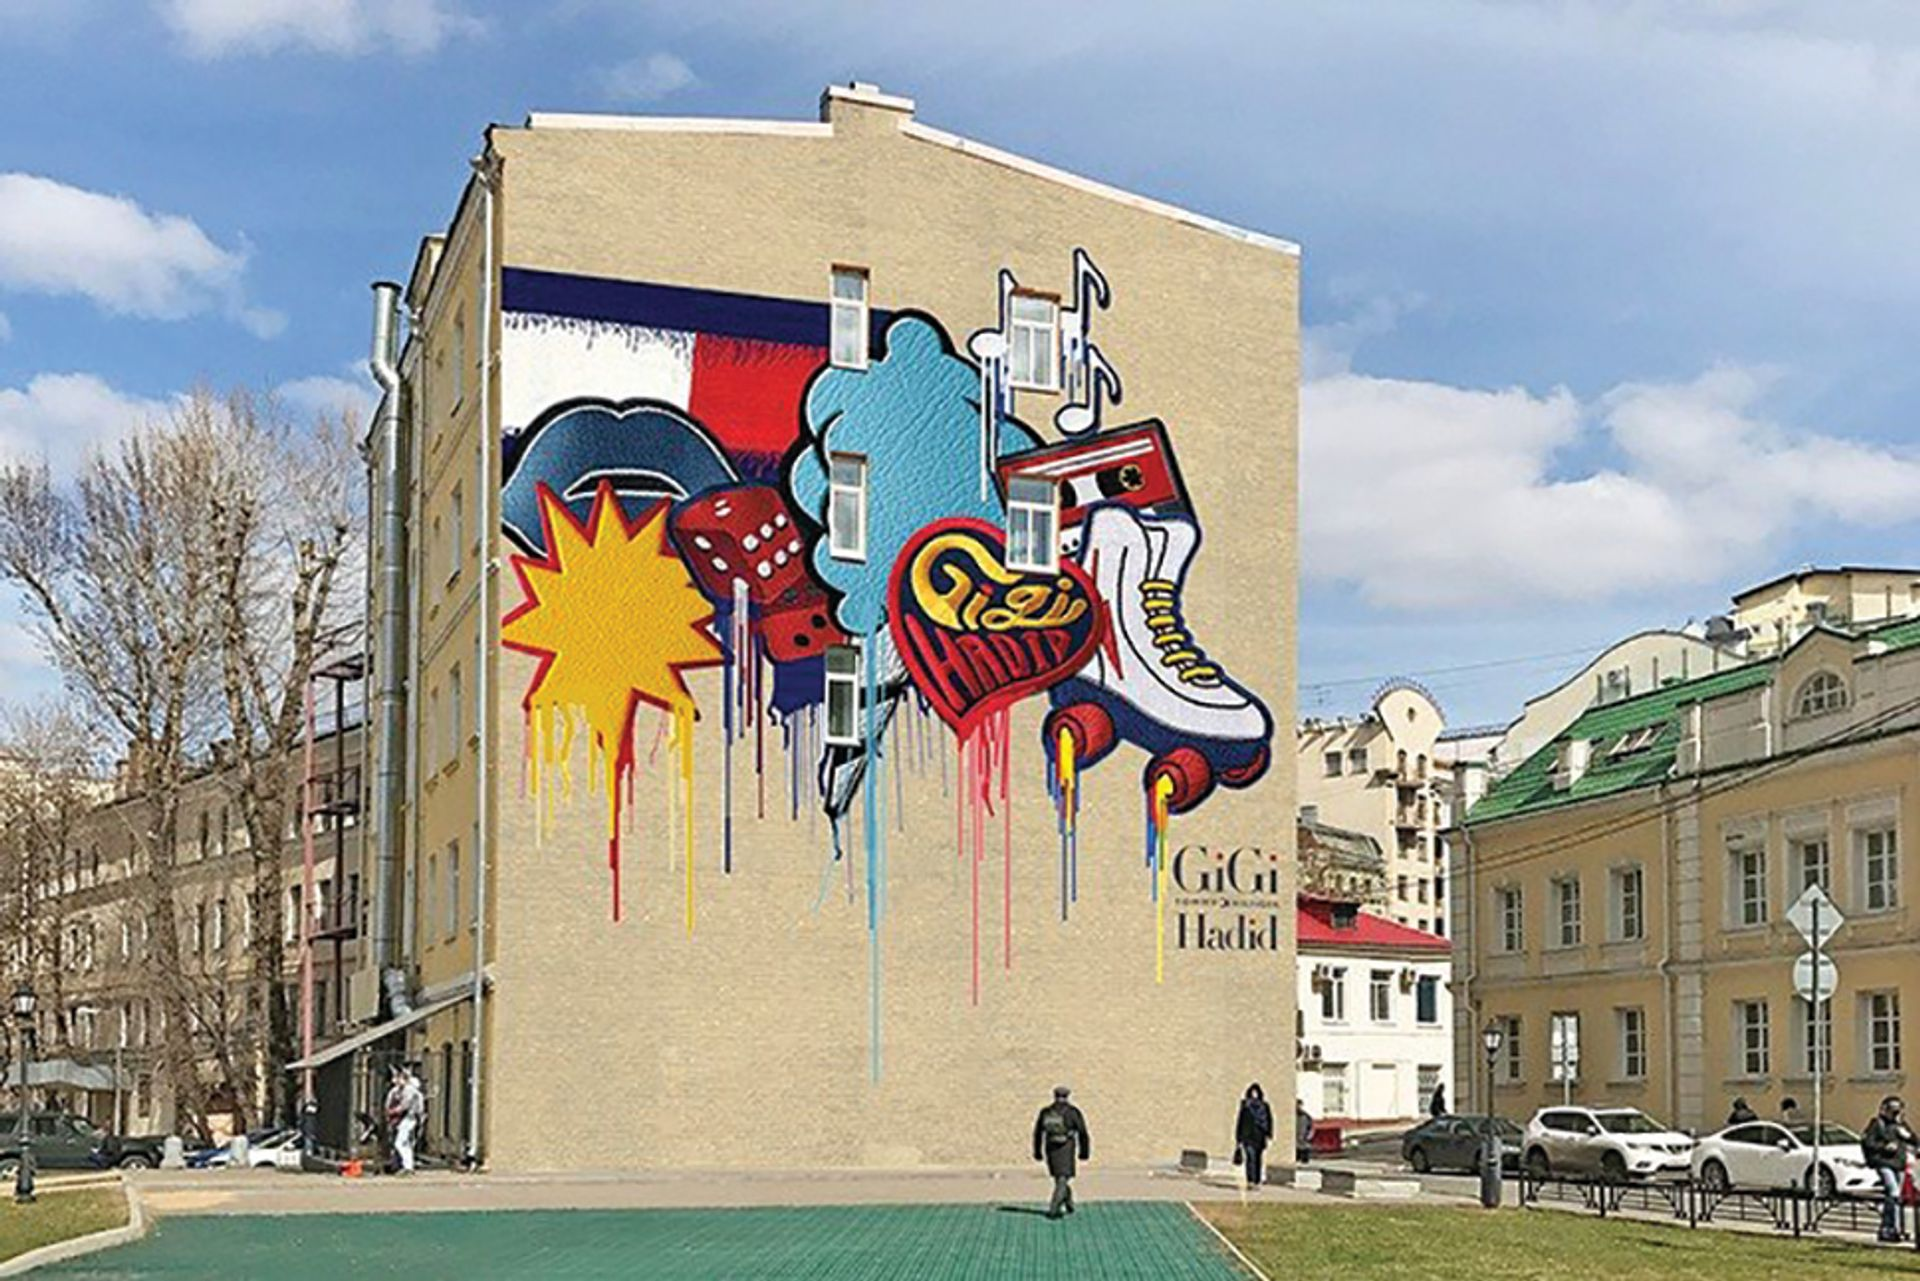 The artist Alexey Mednaya's work was replaced by an advert for the clothing brand Tommy Hilfiger Artmossphere